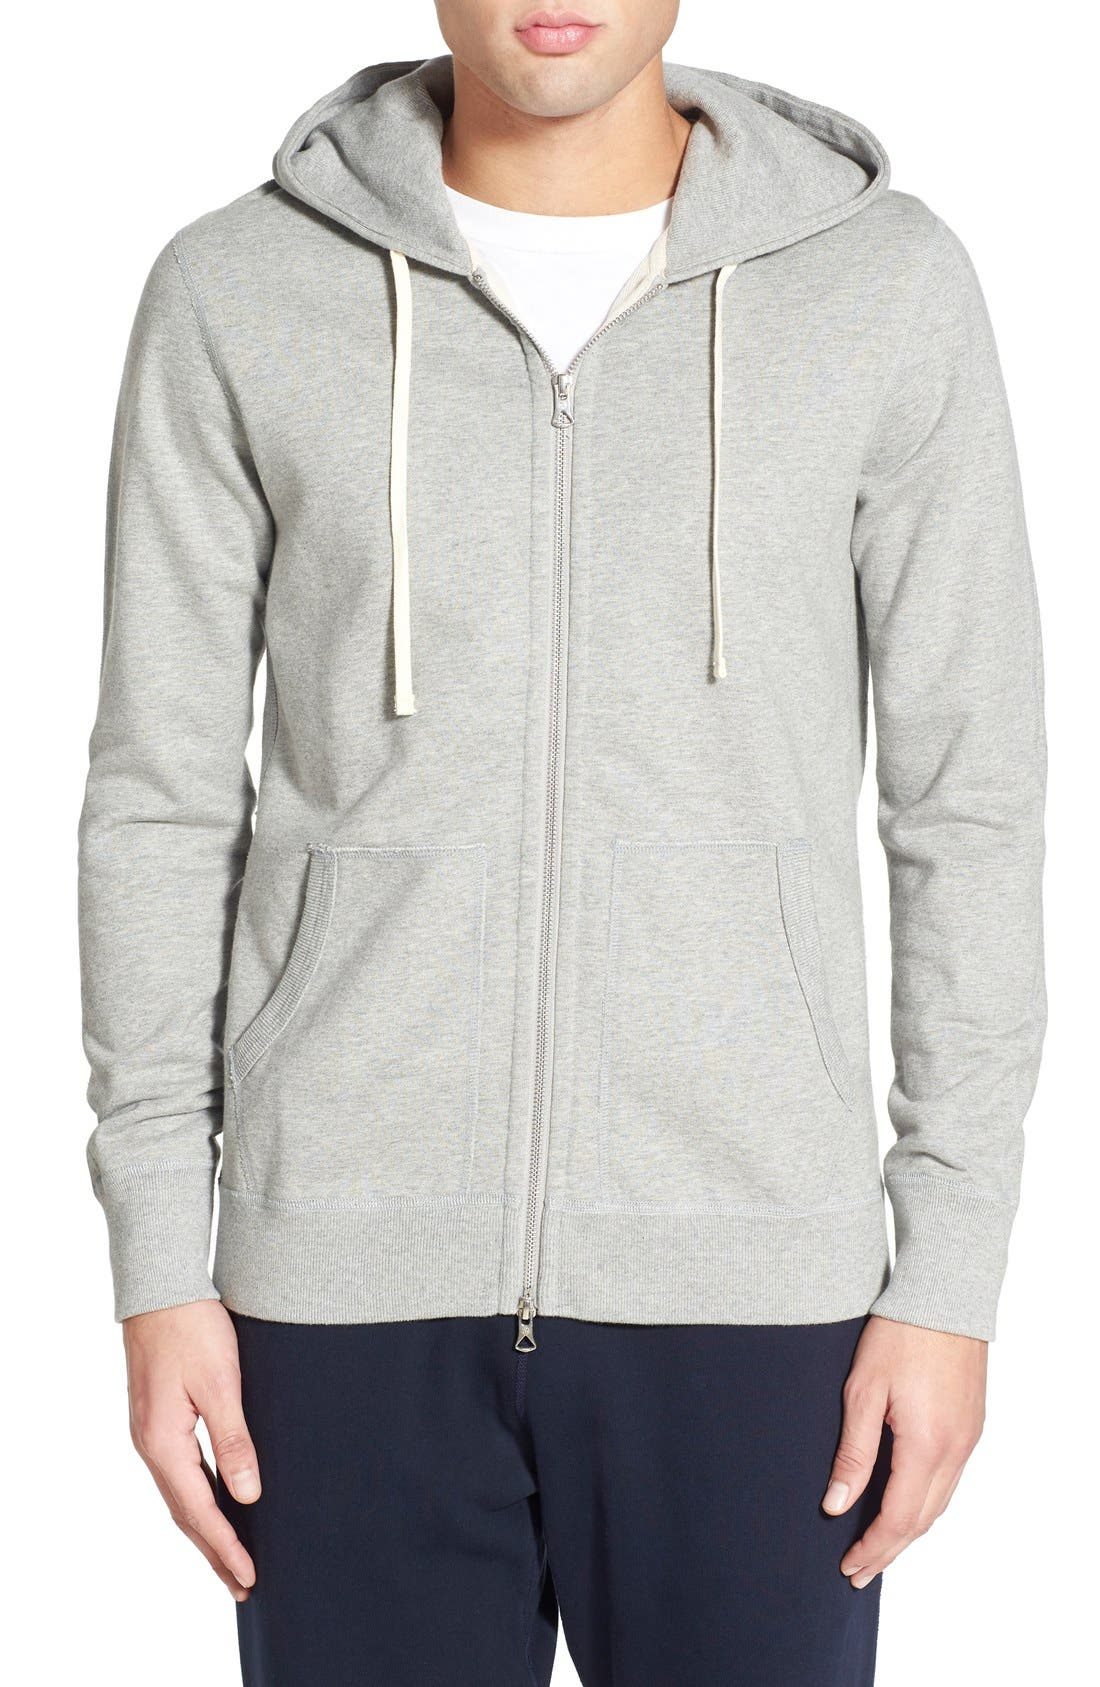 Alternate Image 1 Selected - Reigning Champ Trim Fit Full Zip Hoodie